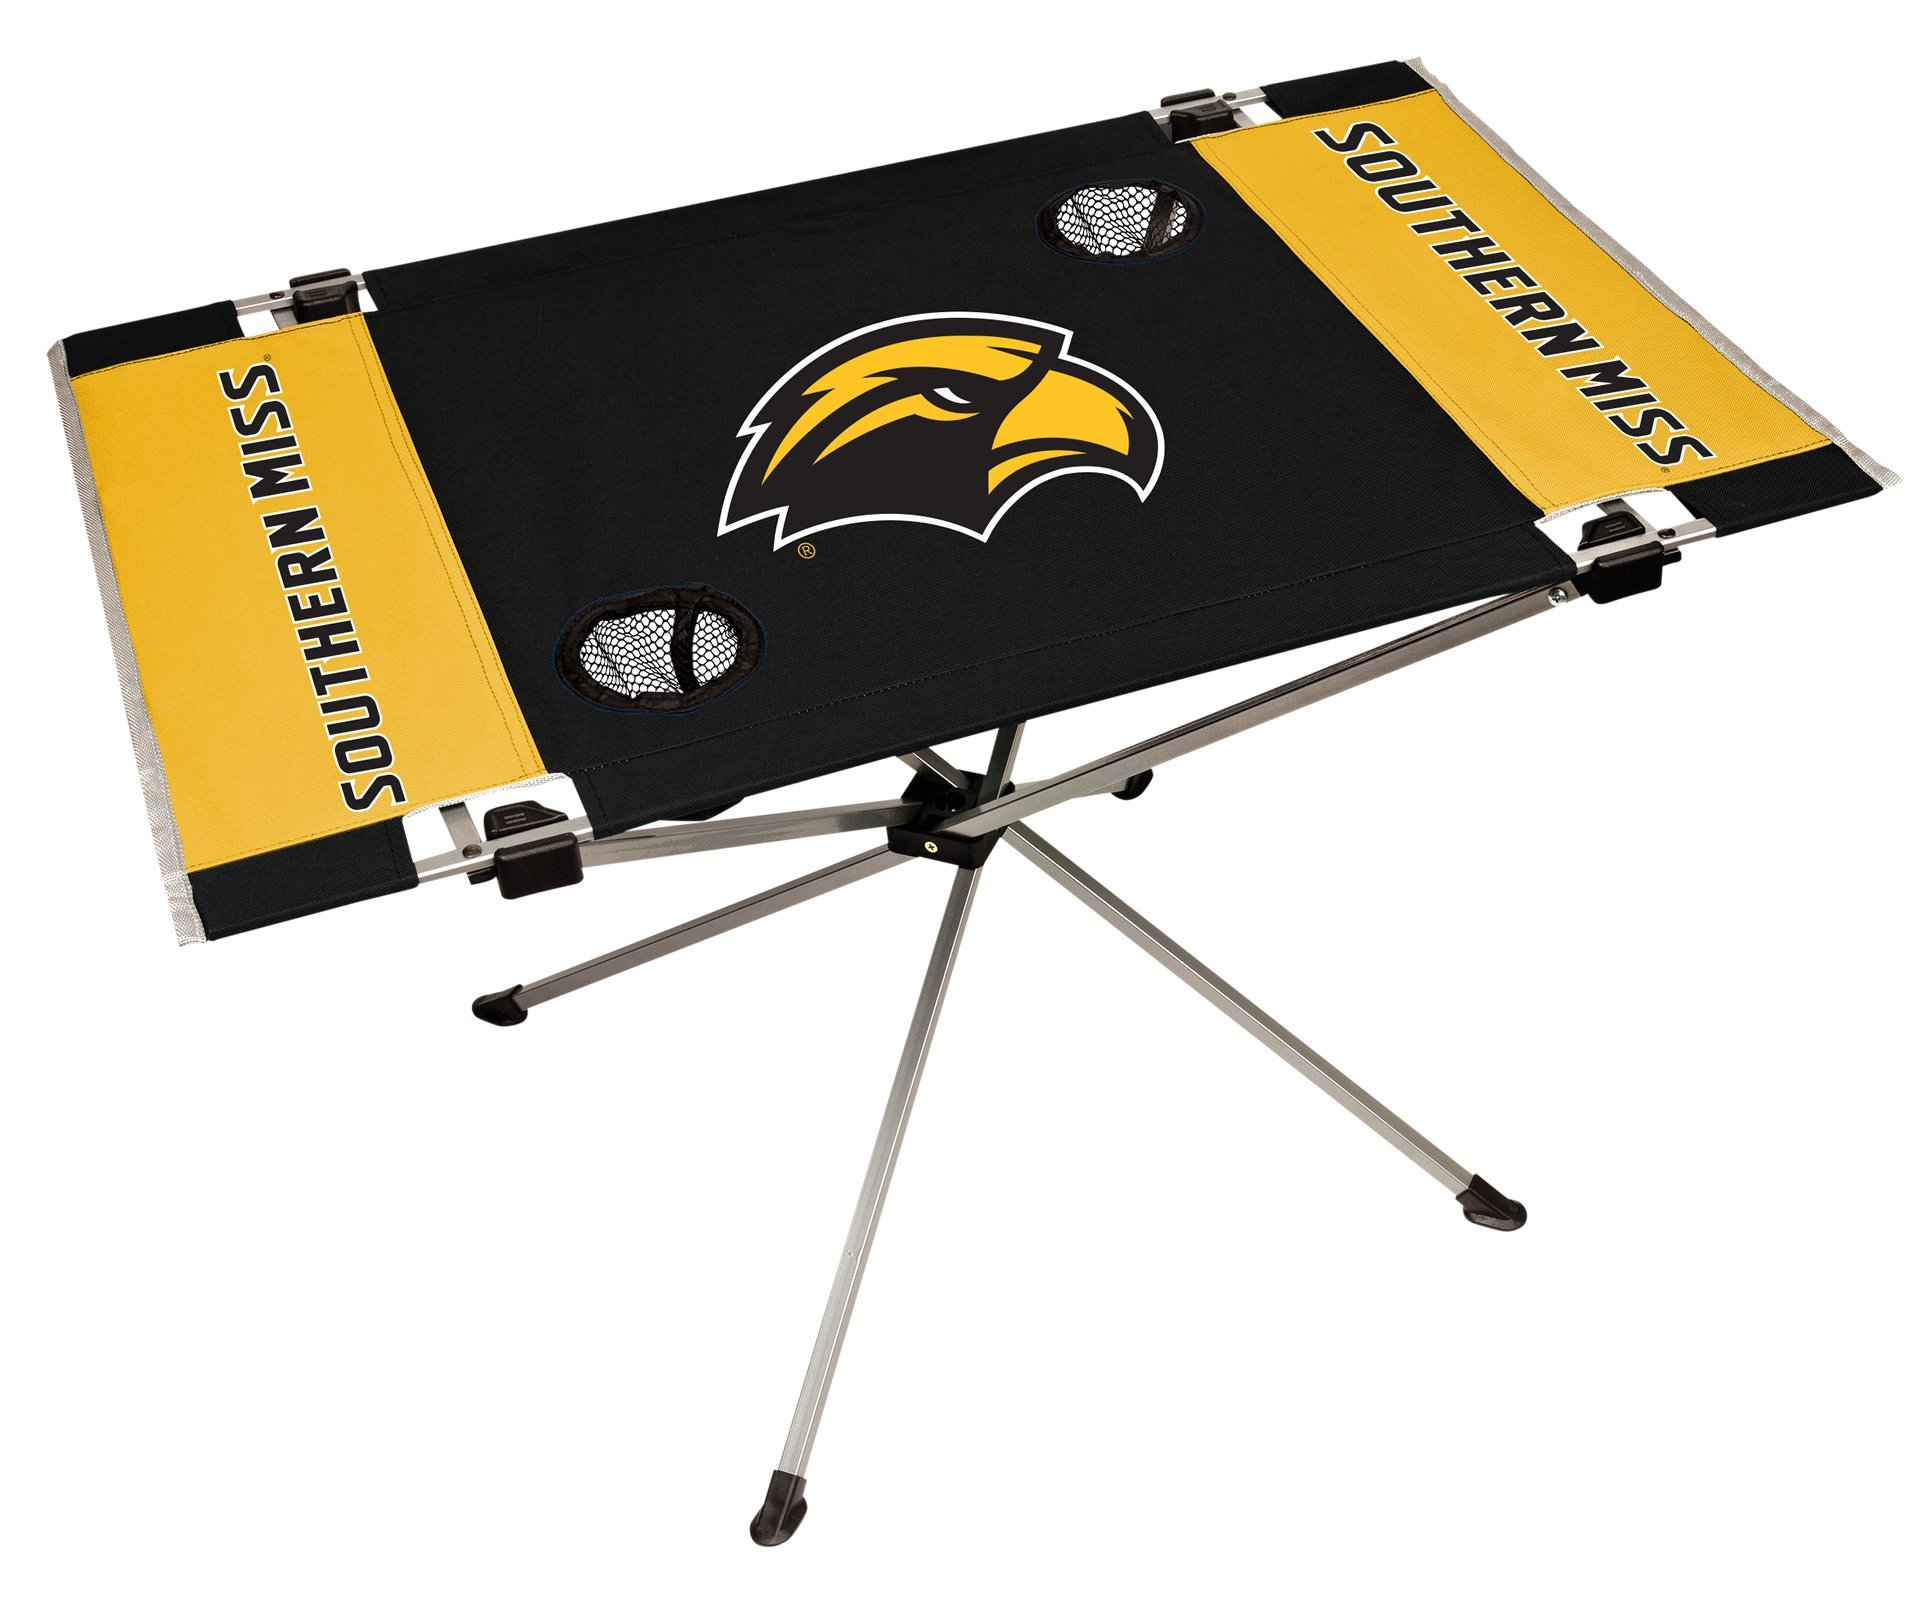 Rawlings NCAA Southern Mississippi Golden Eagles NCAA Endzone Tailgate Table, Black, 31.5'' Large x 20.7'' W x 19'' H by Rawlings